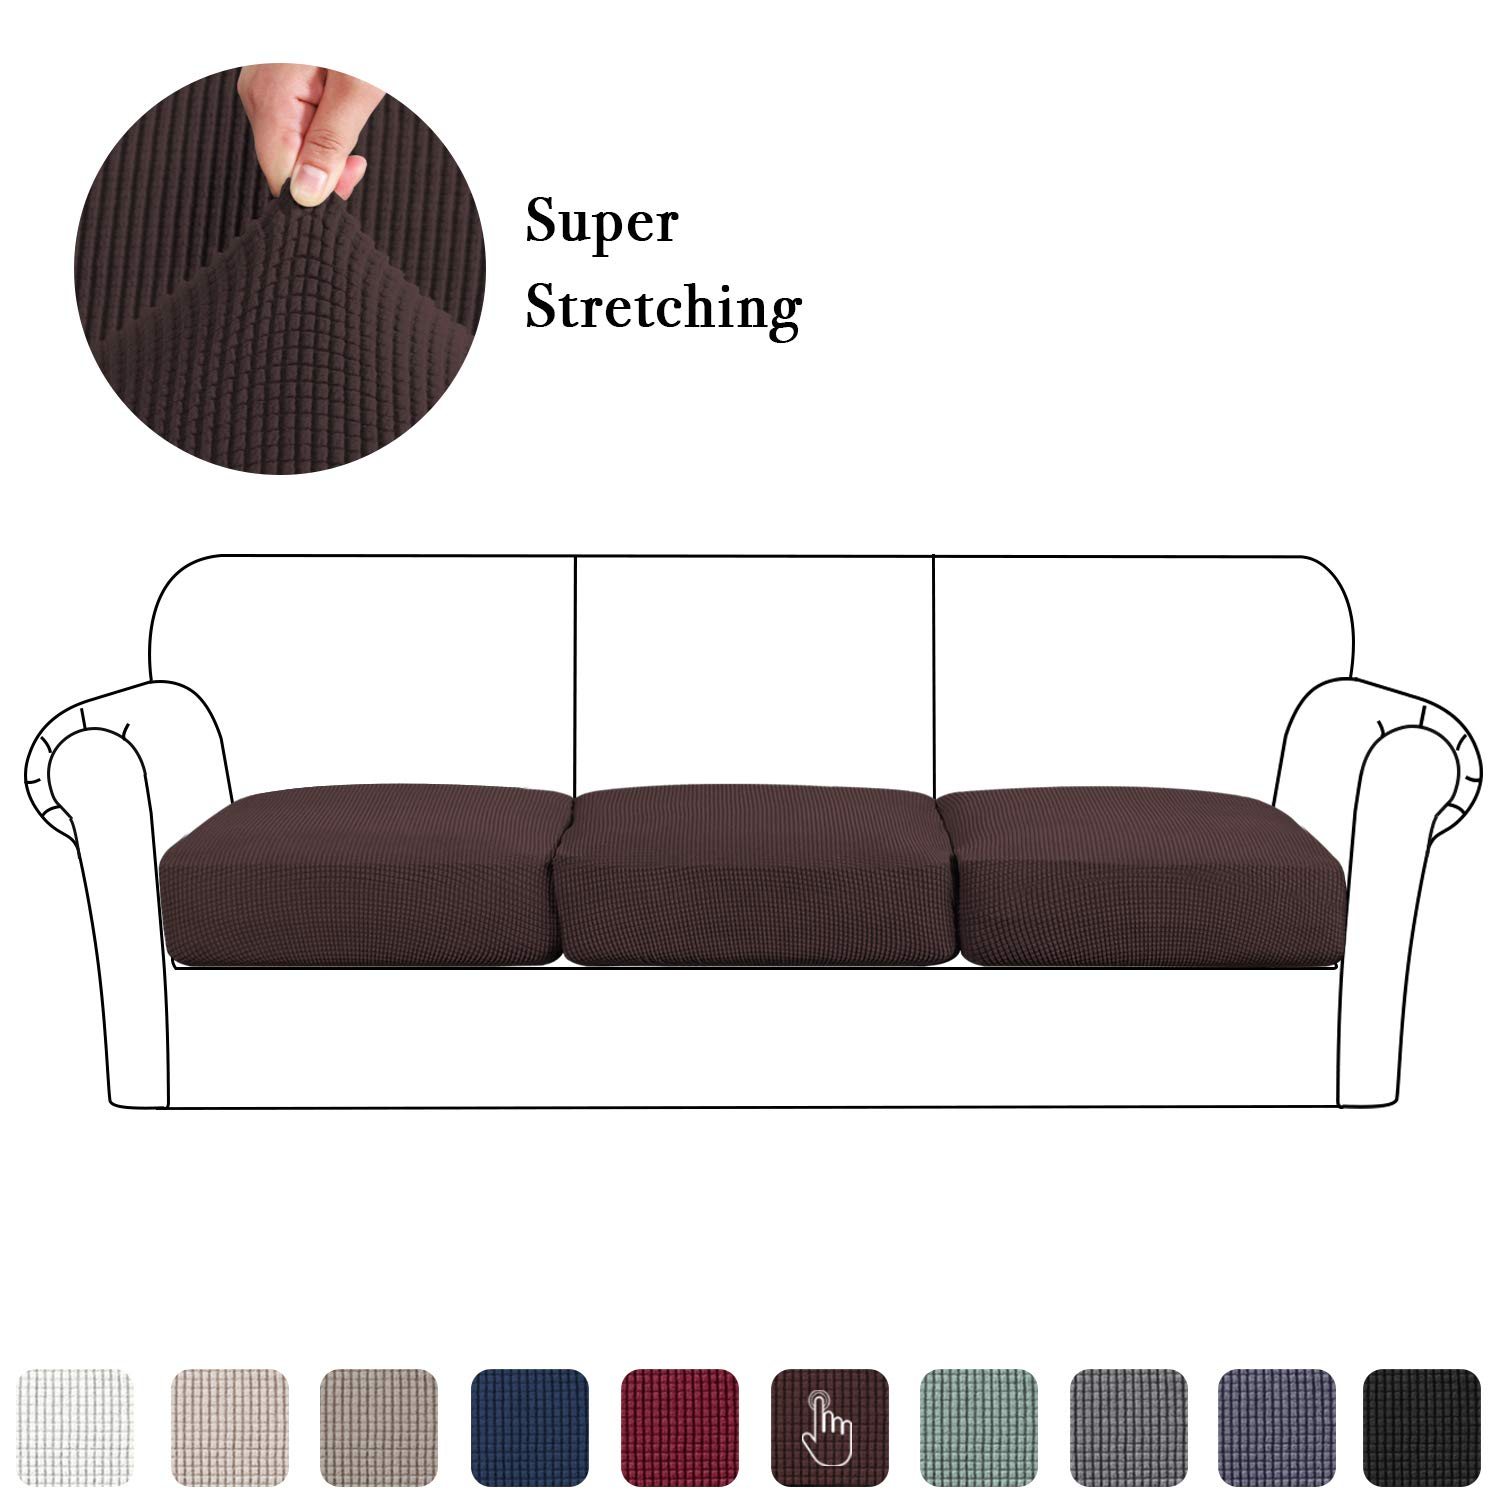 3 Pieces Sofa Seat Slipcovers, Couch Cushion Covers Stretch Spandex Non Skid Jacquard Fabric Furniture Protector Washable (3 Pieces Cushion Covers, Brown)